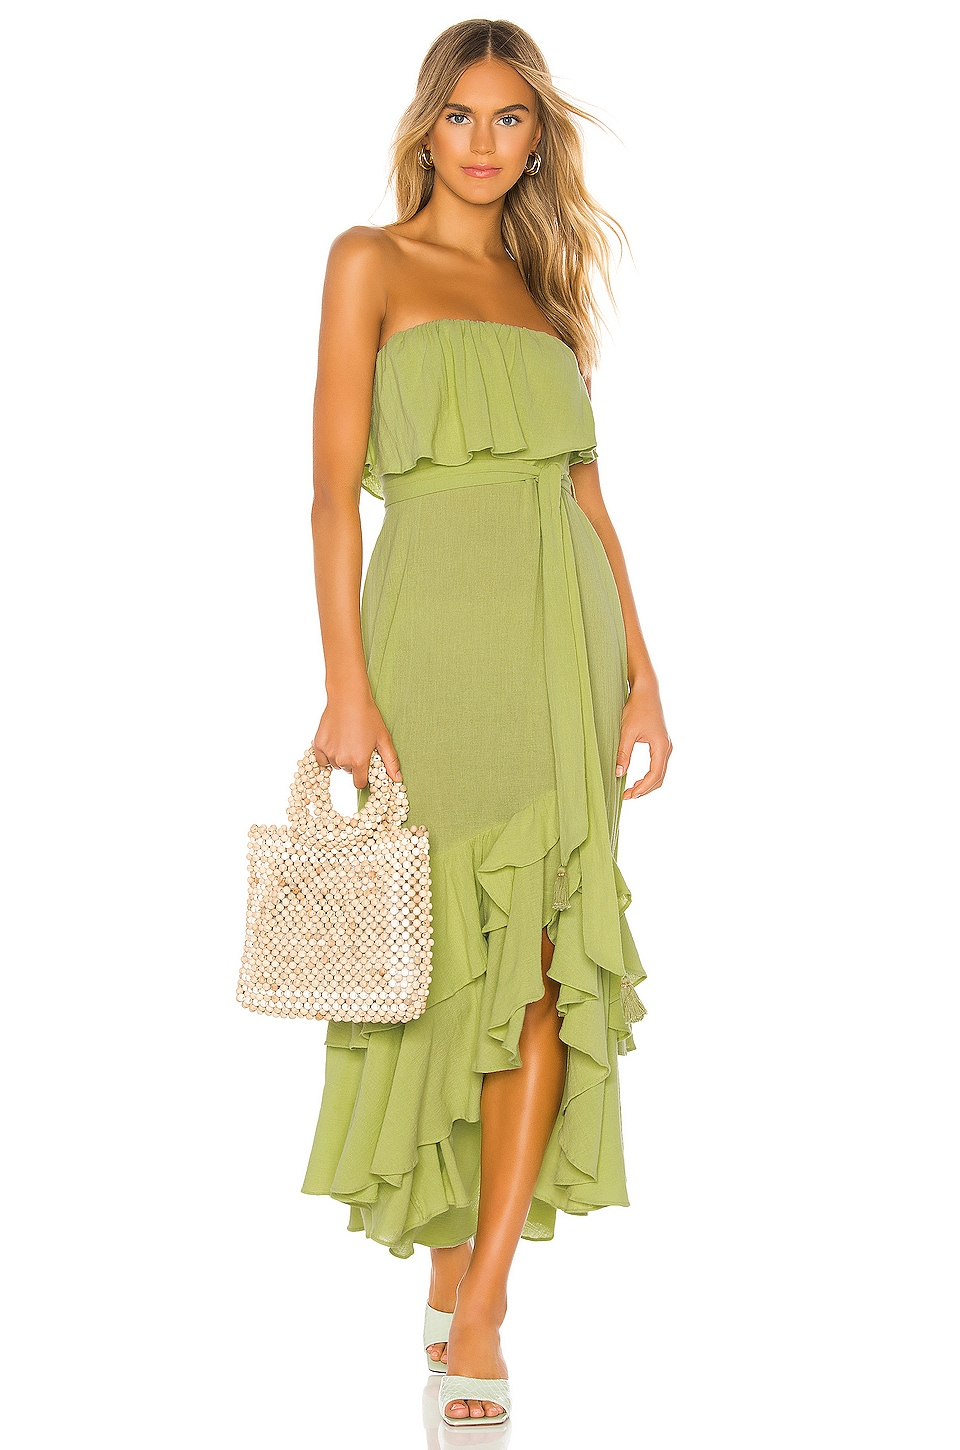 Free People Tavia Dress in Green